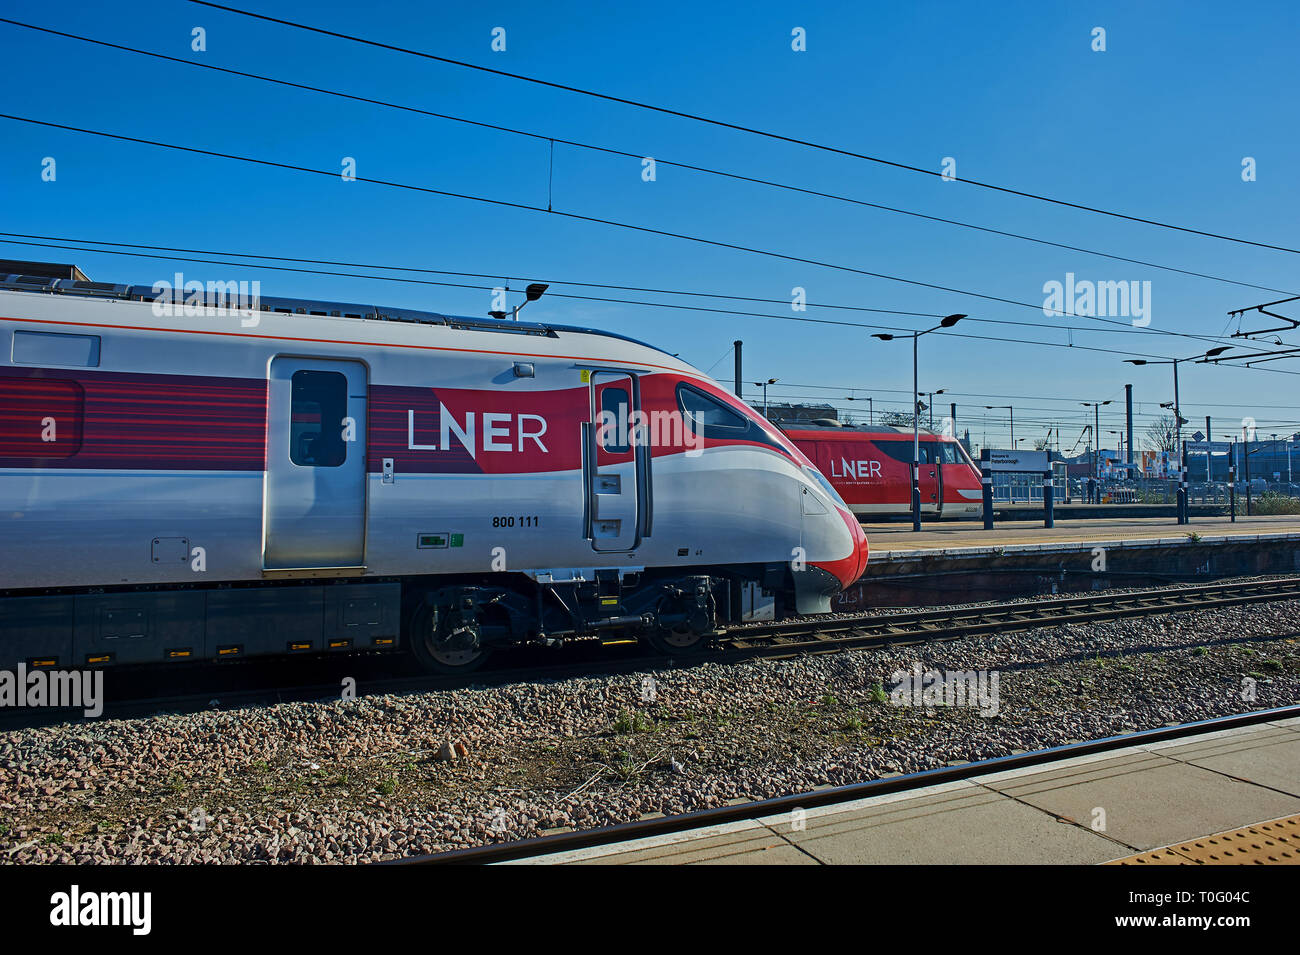 New Azuma streamlined trains in LNER railway livery at Peterborough station. Stock Photo